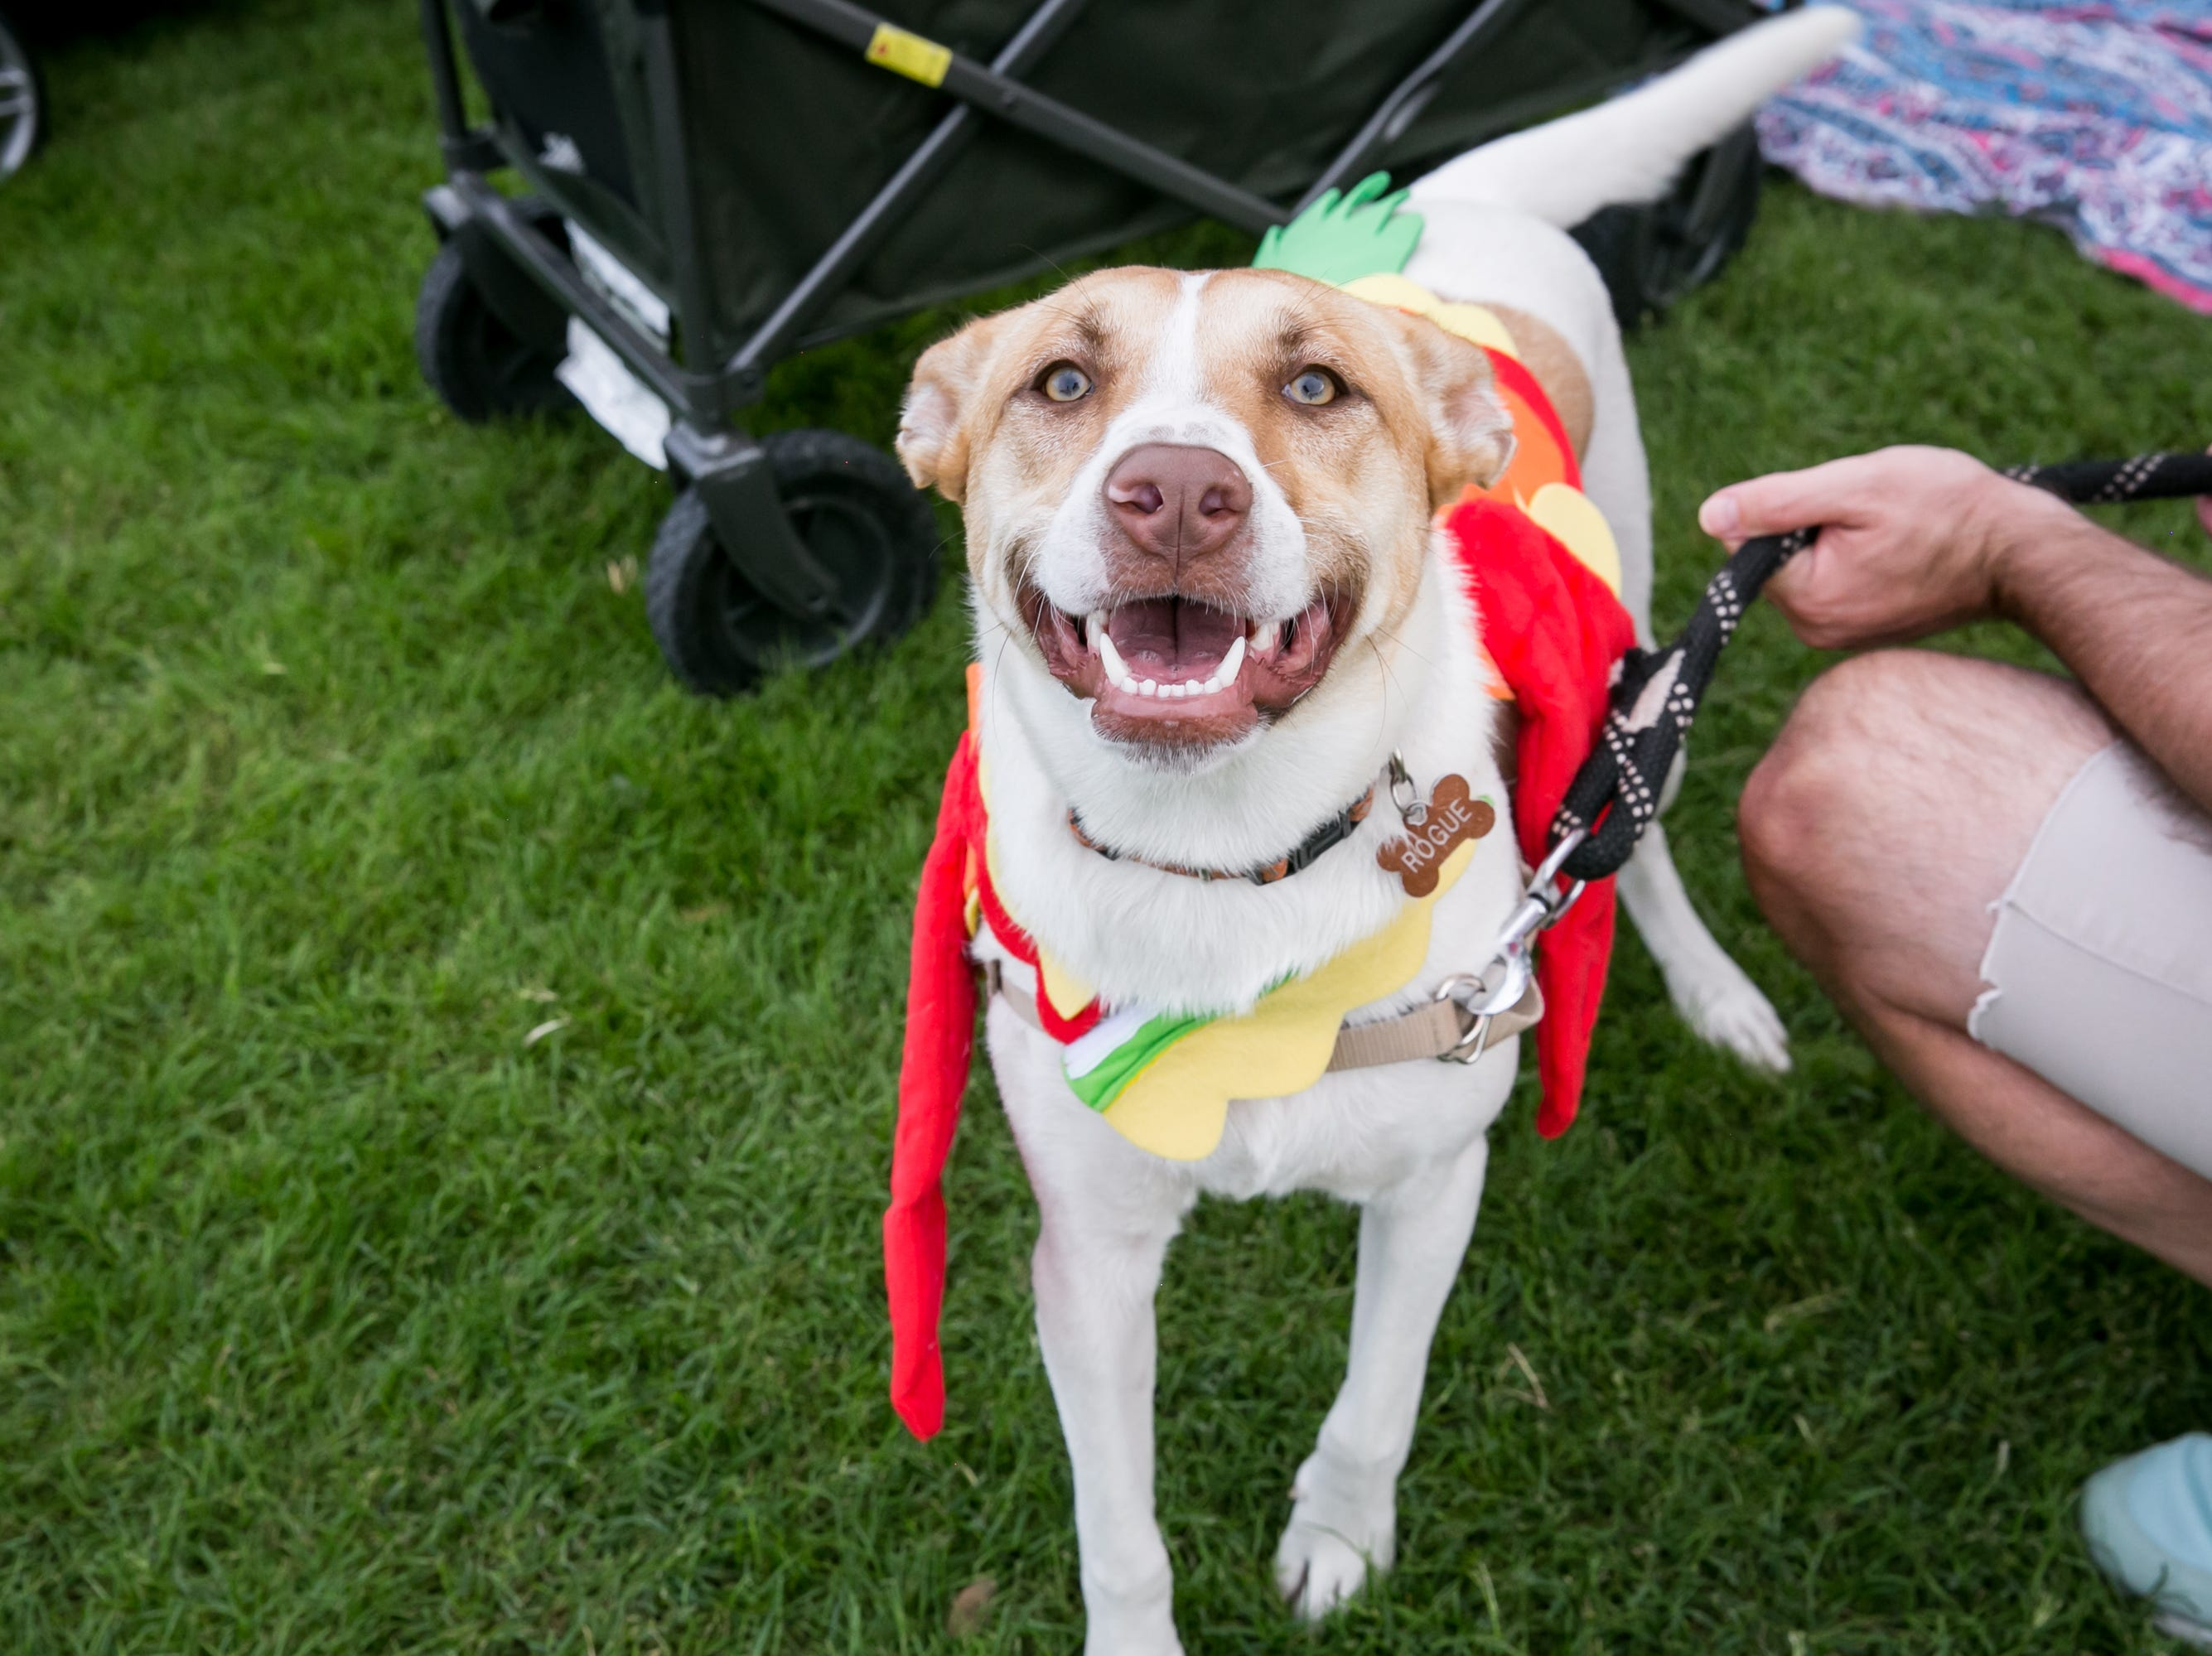 The dogs were so happy during Howl-o-Ween at Hance Park on Sunday, October 28, 2018.